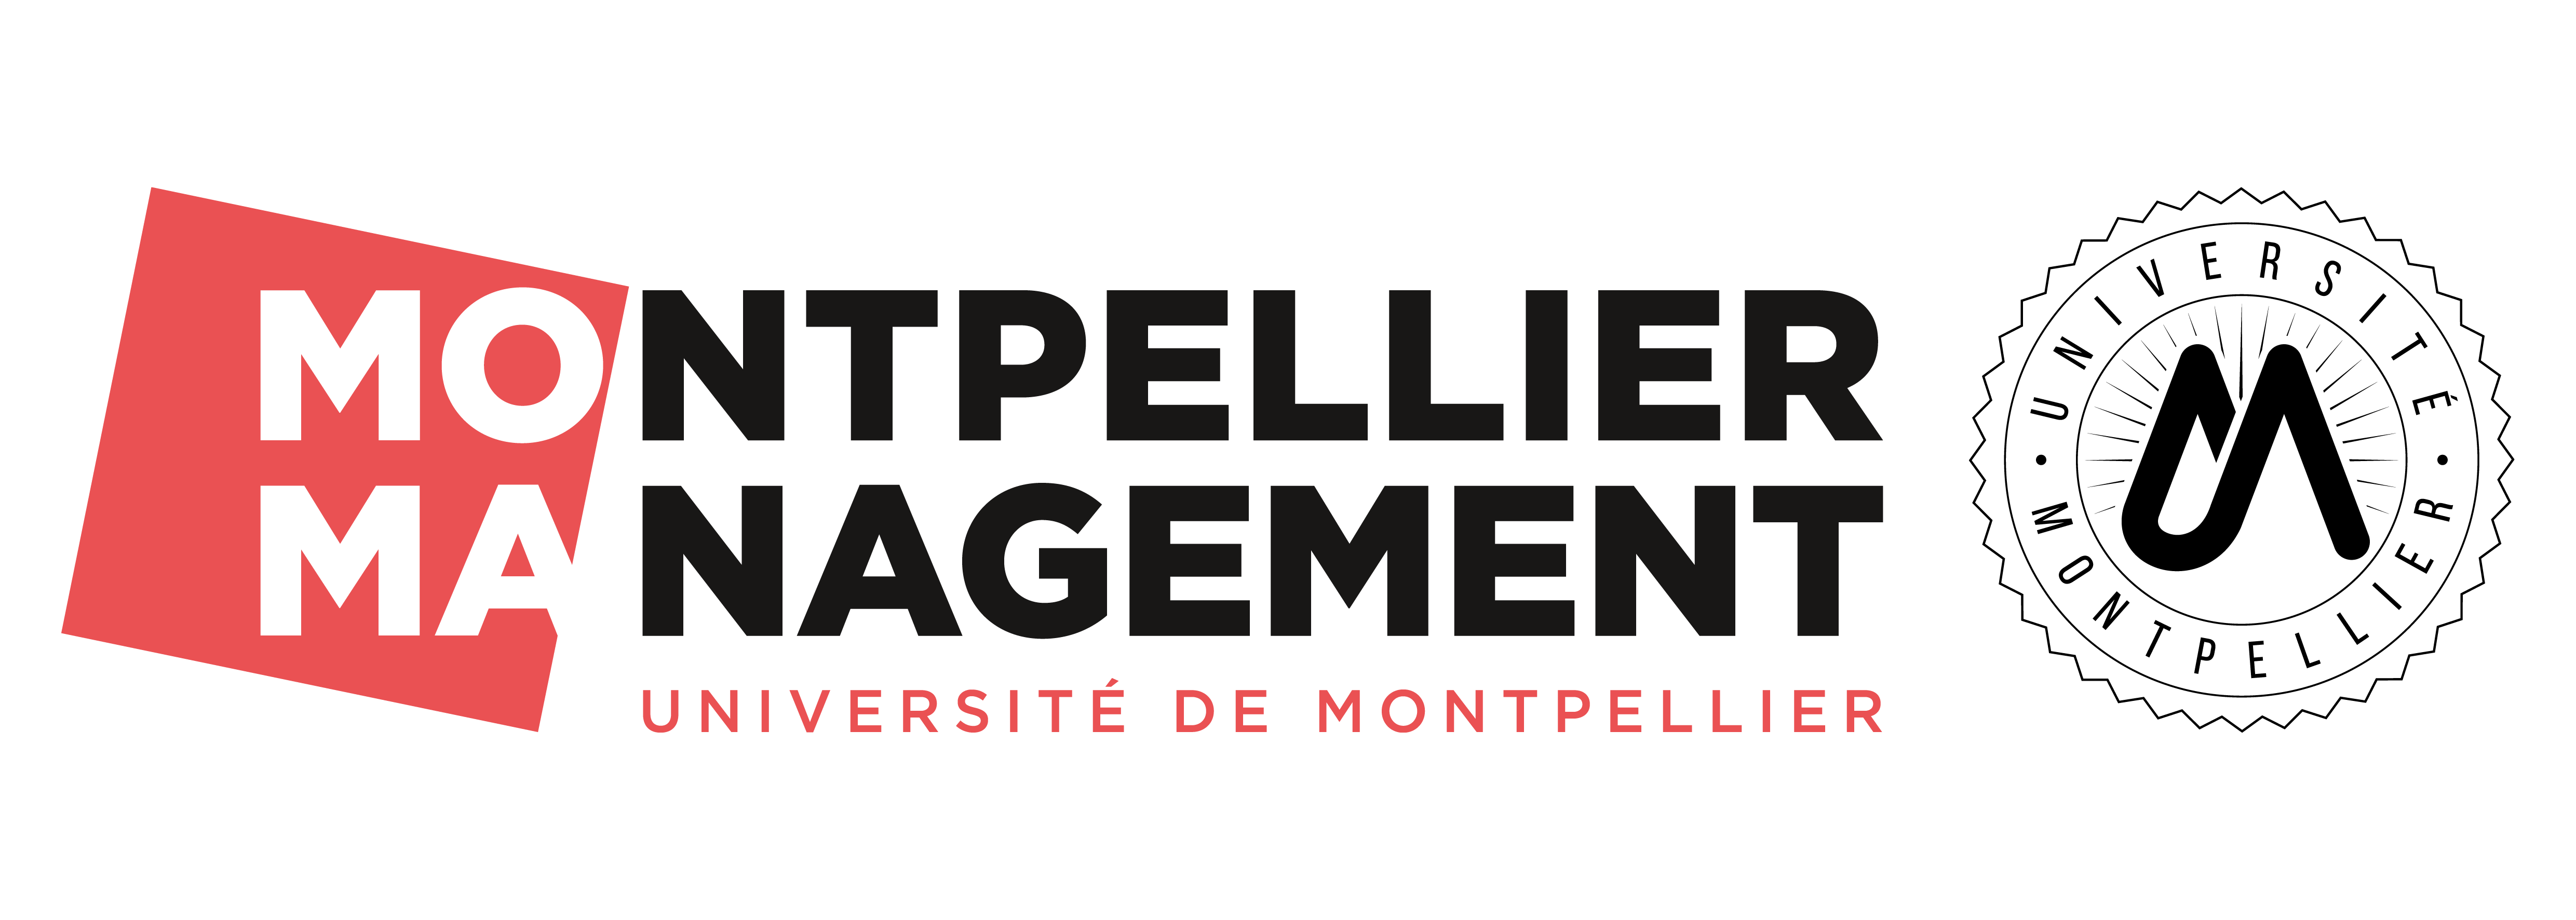 Montpellier Management (Moma)